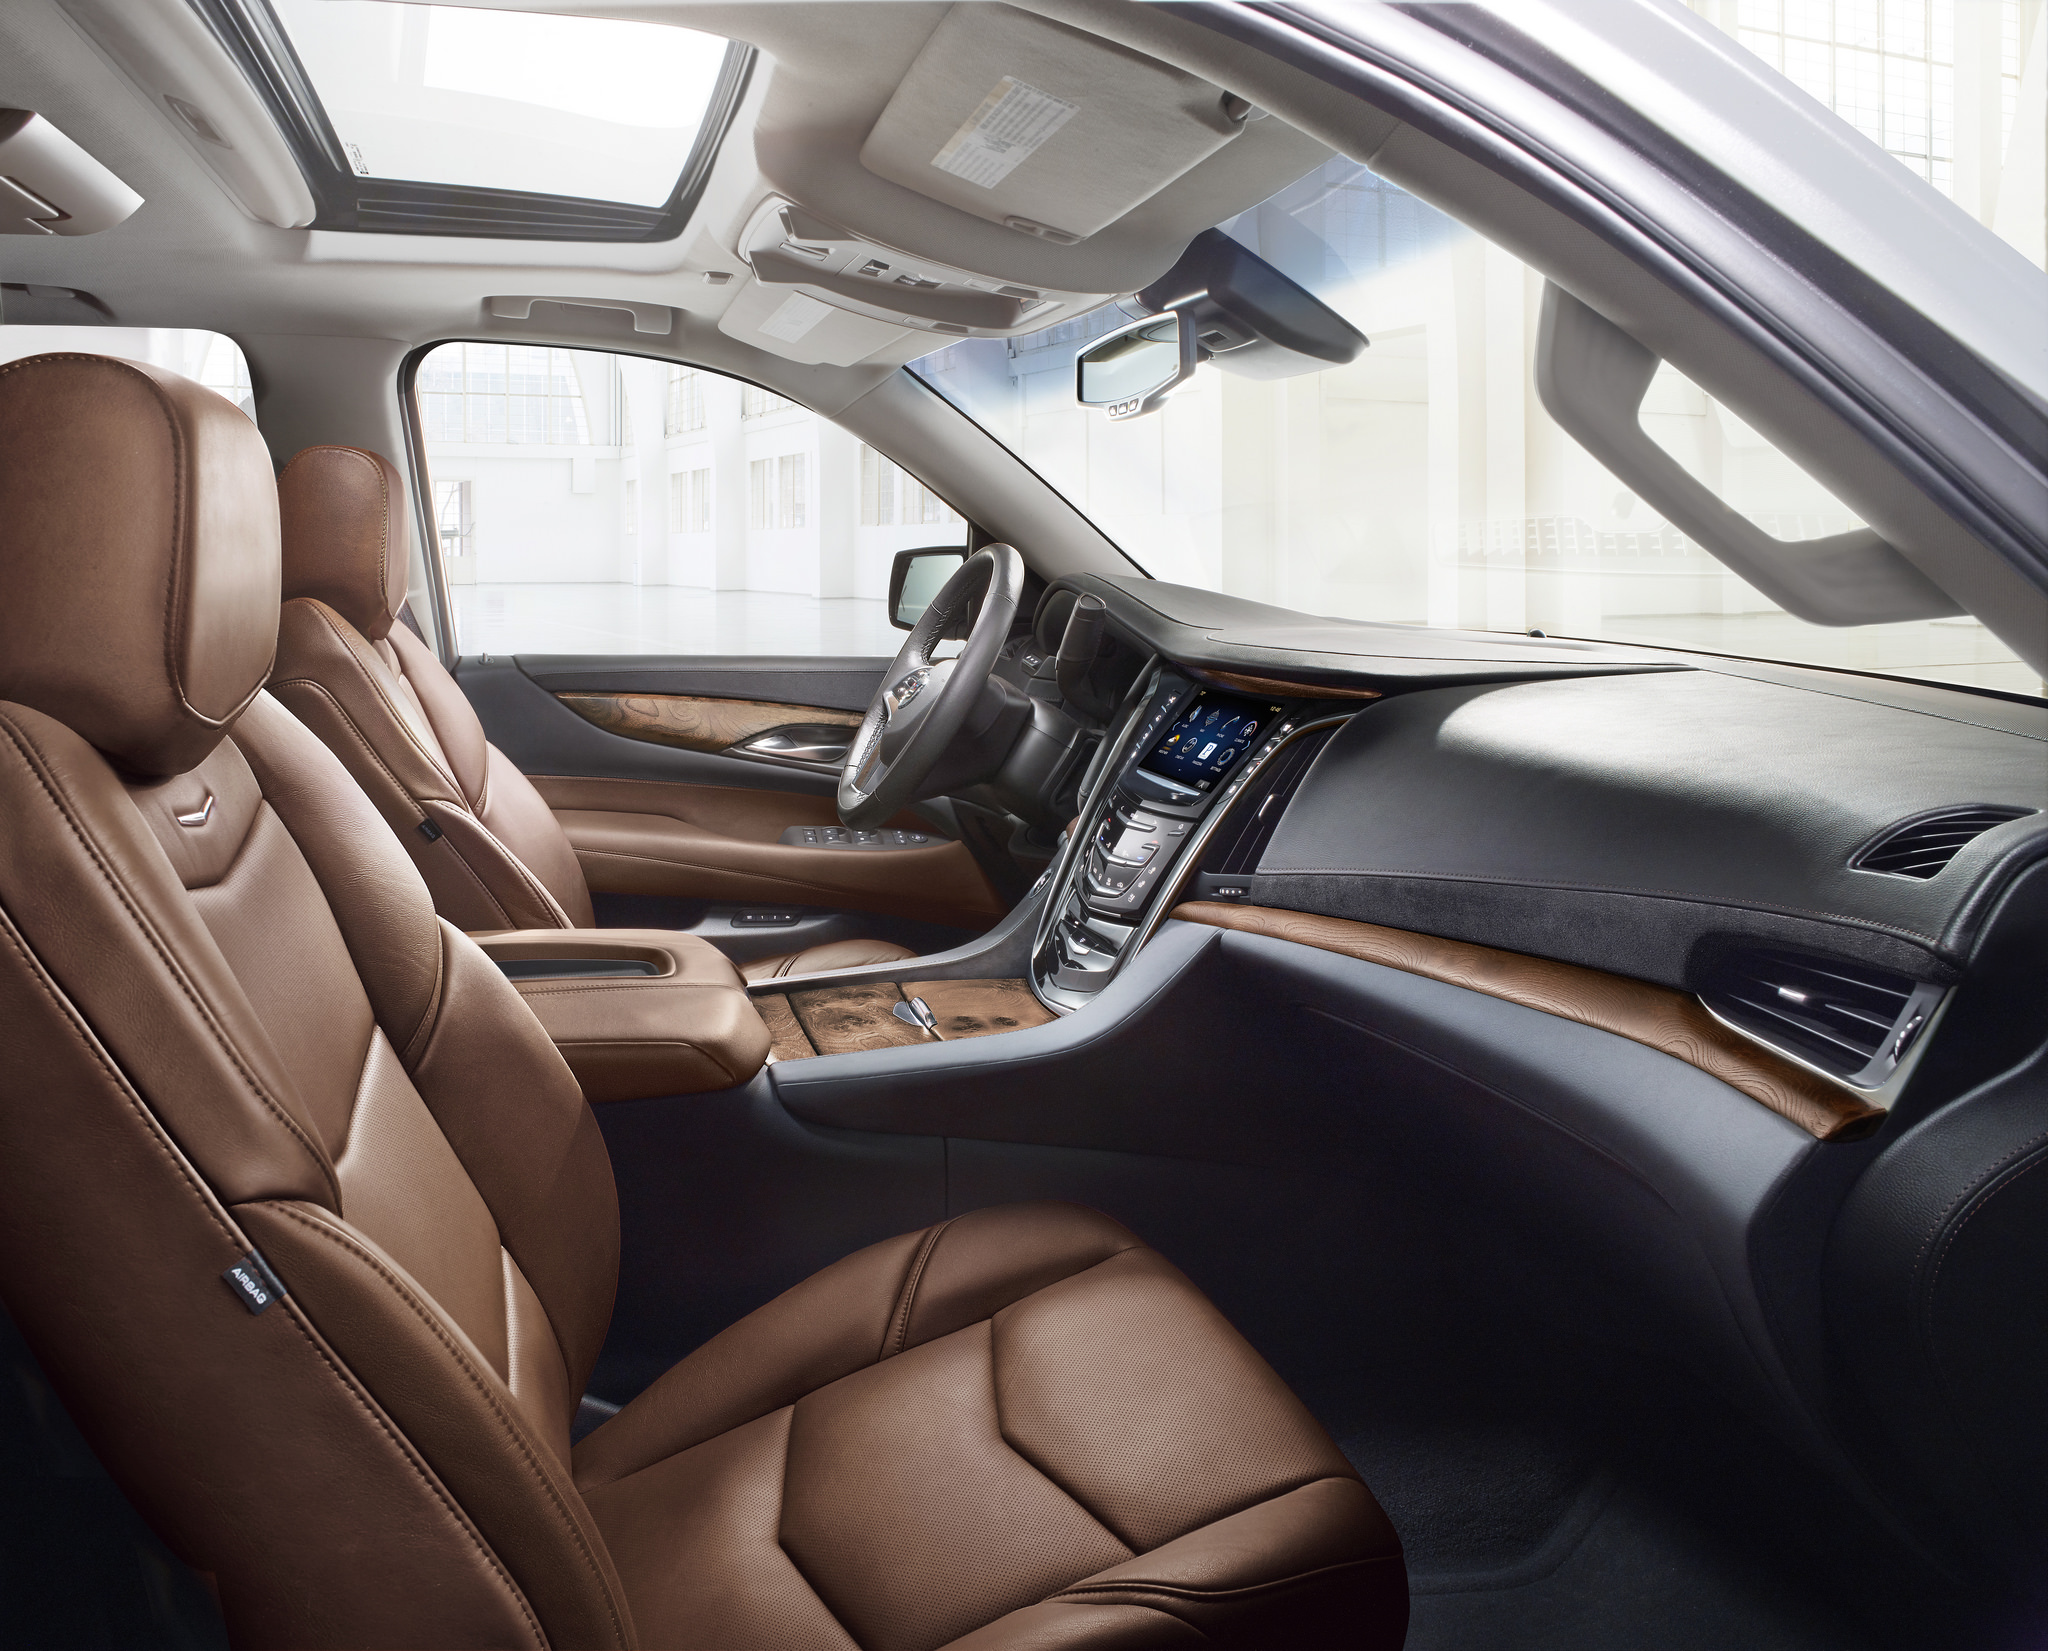 Cadillac Massage Seats Help You Relax In Your Luxury Ride Carl Hogan Automotive Blog